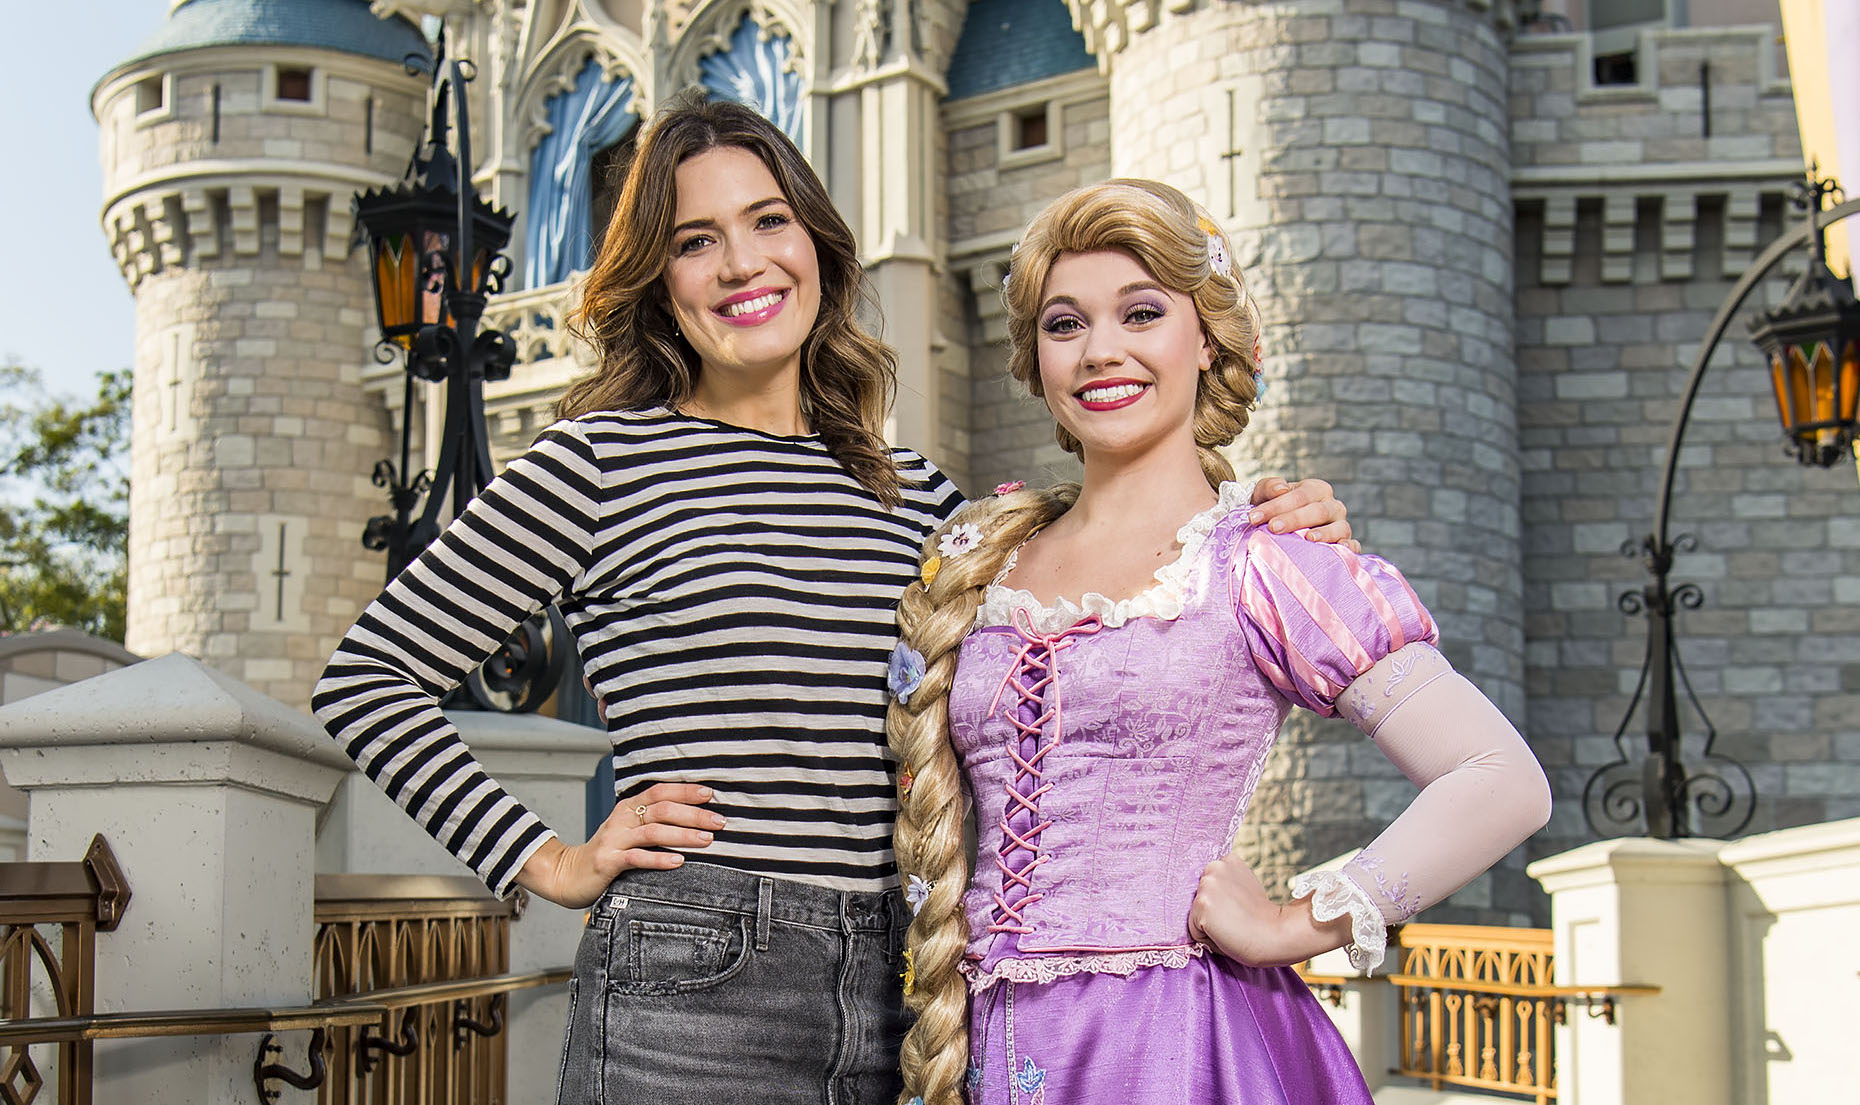 Just like the princess she is, Mandy Moore had the best birthday ever at Disneyland